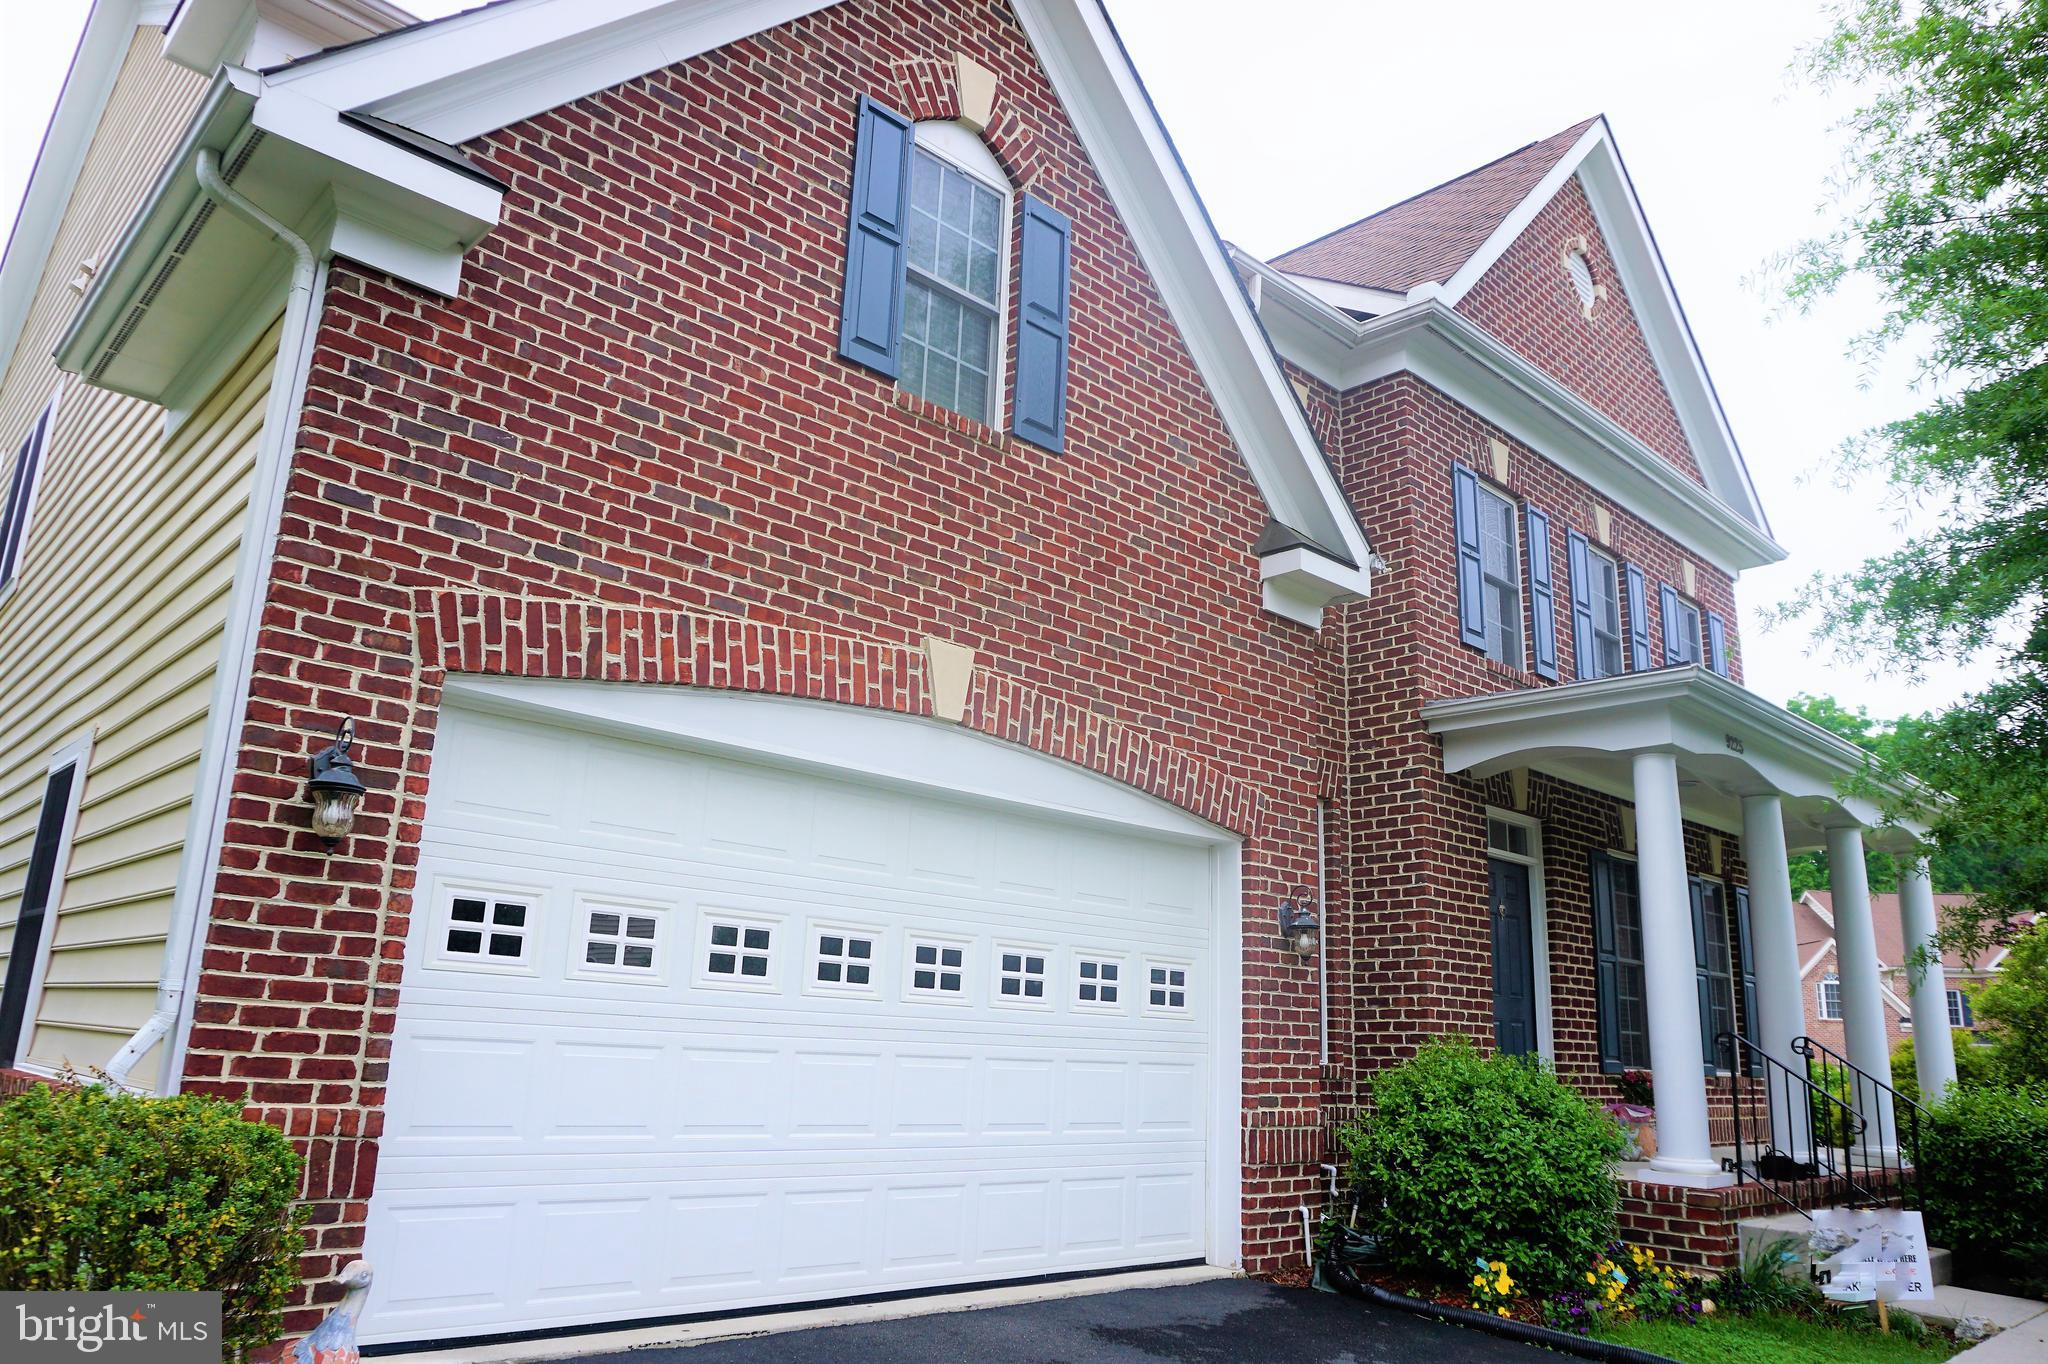 Location plus Luxury?? Yes, it does exist! You have found it here! Over 5000 sqft of living space in prime location! 5 Bedrooms to include 2 Master Bedrooms. 4.5 Baths, Gourmet Style Kitchen with Beautiful Granite Counter tops, Stainless Steel Appliances, Hardwood floors and Recess Lighting! This Home has been perfectly maintained and is ready for a renter to enjoy it! Upper level has 3 Full bathrooms, walk in closets in each room, 2 Master Bedrooms with sitting area, a total of 4 bedrooms and an upstairs laundry room, you can't ask for more! With a Luxurious Master Bathroom that will have you amazed with it's a separate soaking tub, dual granite sinks and a spacious sit in shower! Need huge walk in closets? The Master Bathroom has it for you with 2 walk in closets! The Main level shines with it's Hardwood floors and Recess lighting. The Spacious eat in kitchen has gourmet style oven and microwave, Granite Counter tops, Stainless Steel Appliances and a spacious Granite Island with a Butler Pantry! Dedicated Living, Dining and Family rooms plus a dedicated office will have you feeling at home with it's cozy gas fireplace! With a legal Bedroom with a walk in closet and a finished bonus room with another walk in closet, the basement has enough space to take care of all of your needs! Recess lighting throughout, a fully finished bathroom and spacious fully finished Recreation Room, it has plenty of potential for it's new tenants. What's even better? How about a walk up basement that backs to the woods for the extra privacy! This property is a perfect place to call home especially being minutes from Ft. Belvooir, close to Quantico, major highways, roads and shops! You can have it all here!